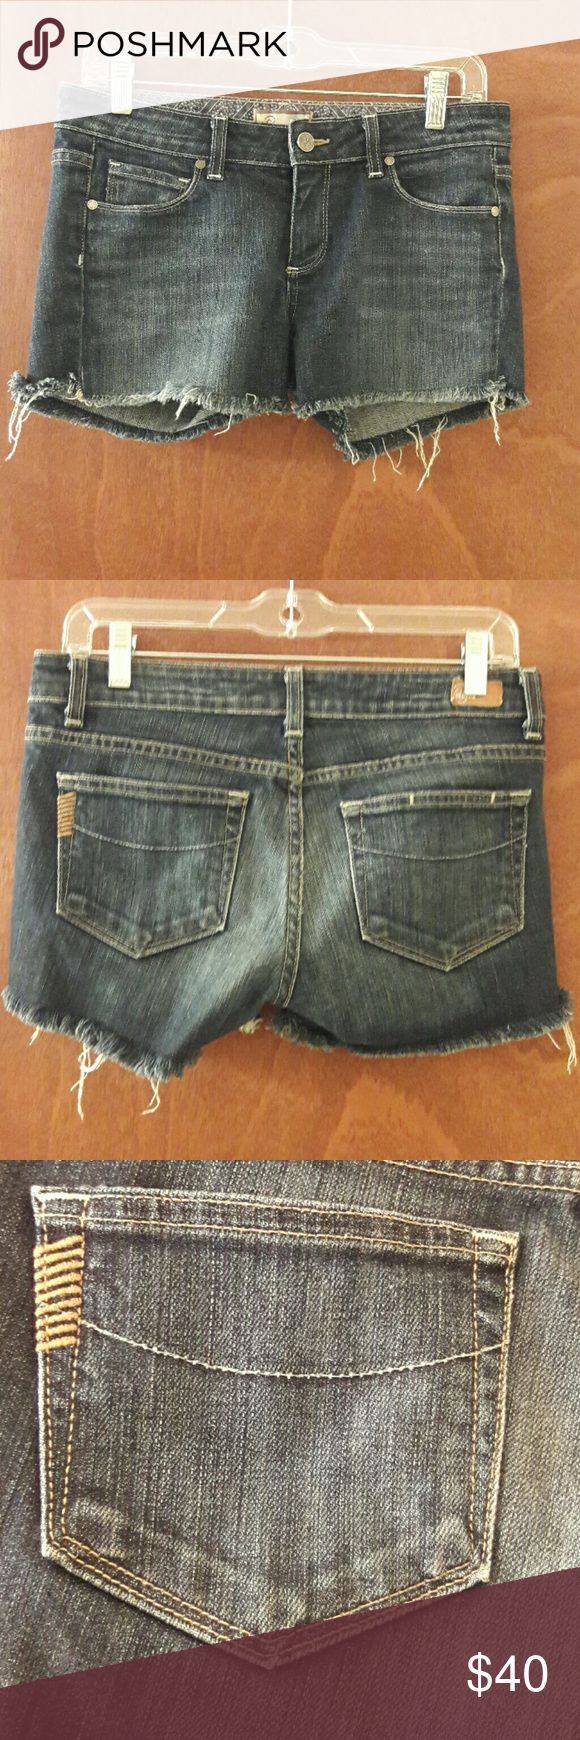 Paige Jean Shorts Premium Denim Size 28 NWOT Paige premium denim women's shorts, size 28. Slightly distressed look with frayed bottoms. New with out tags. Never been worn. Paige Jeans Shorts Jean Shorts